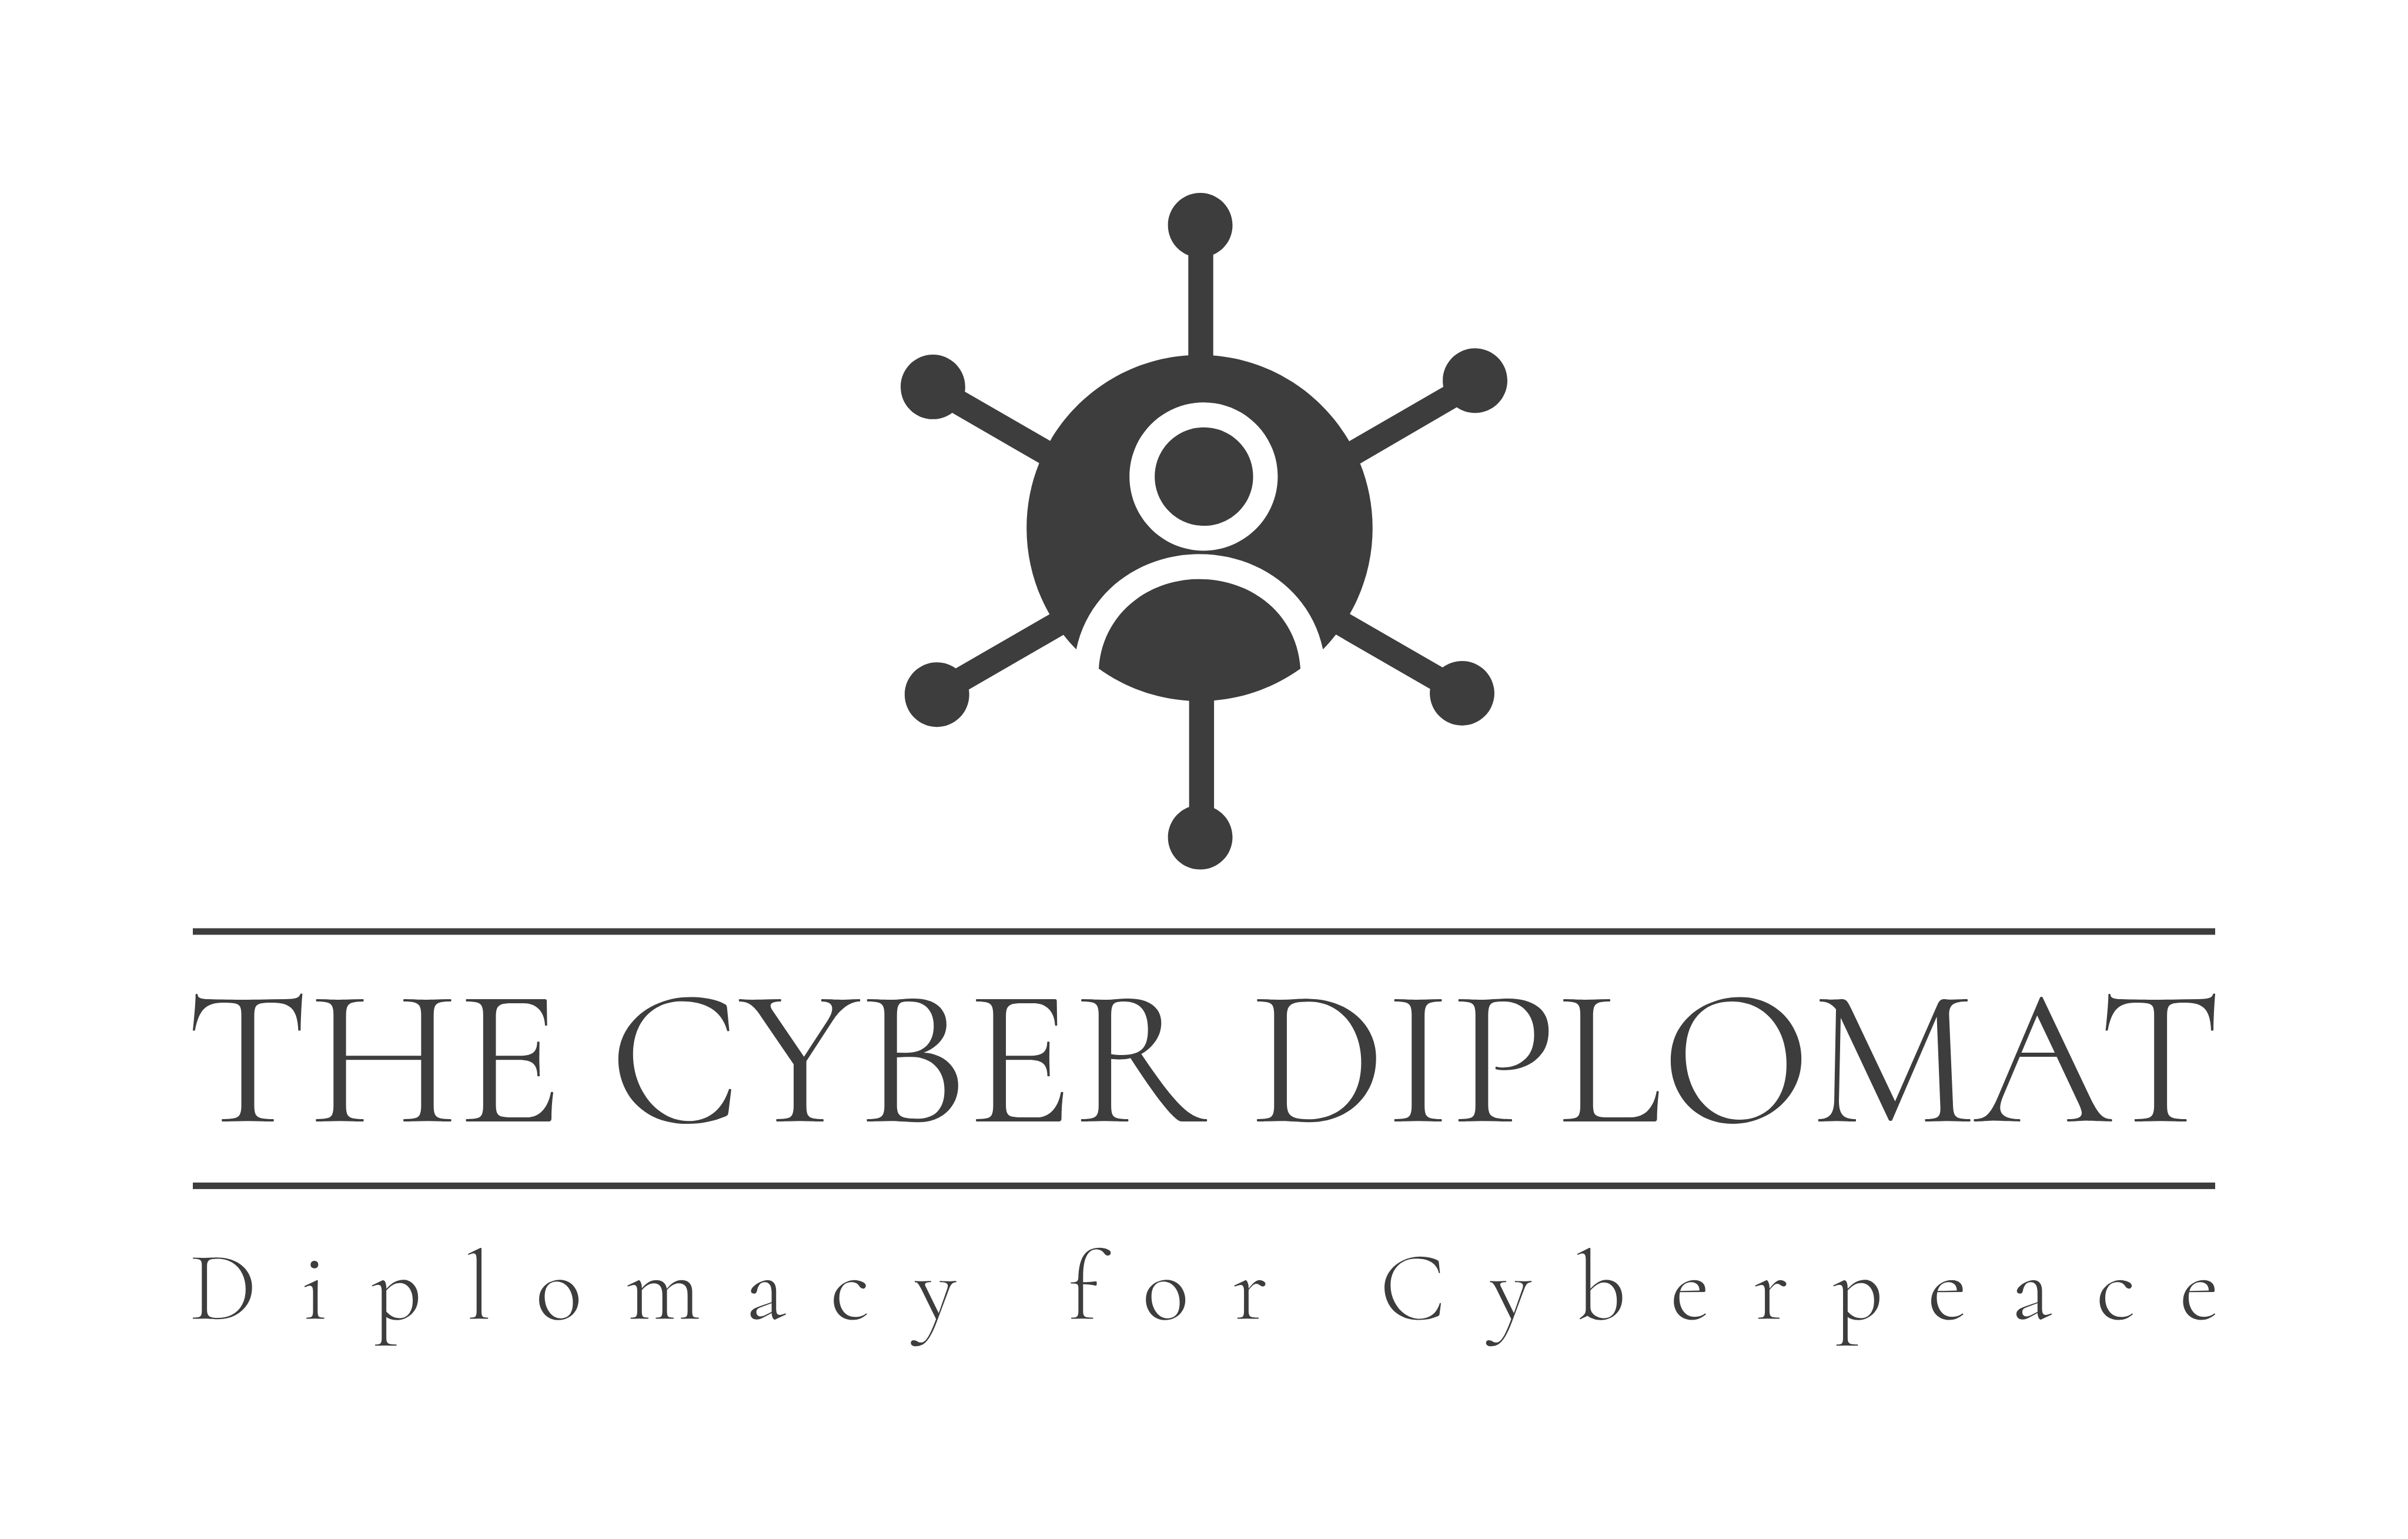 The Cyber Diplomat